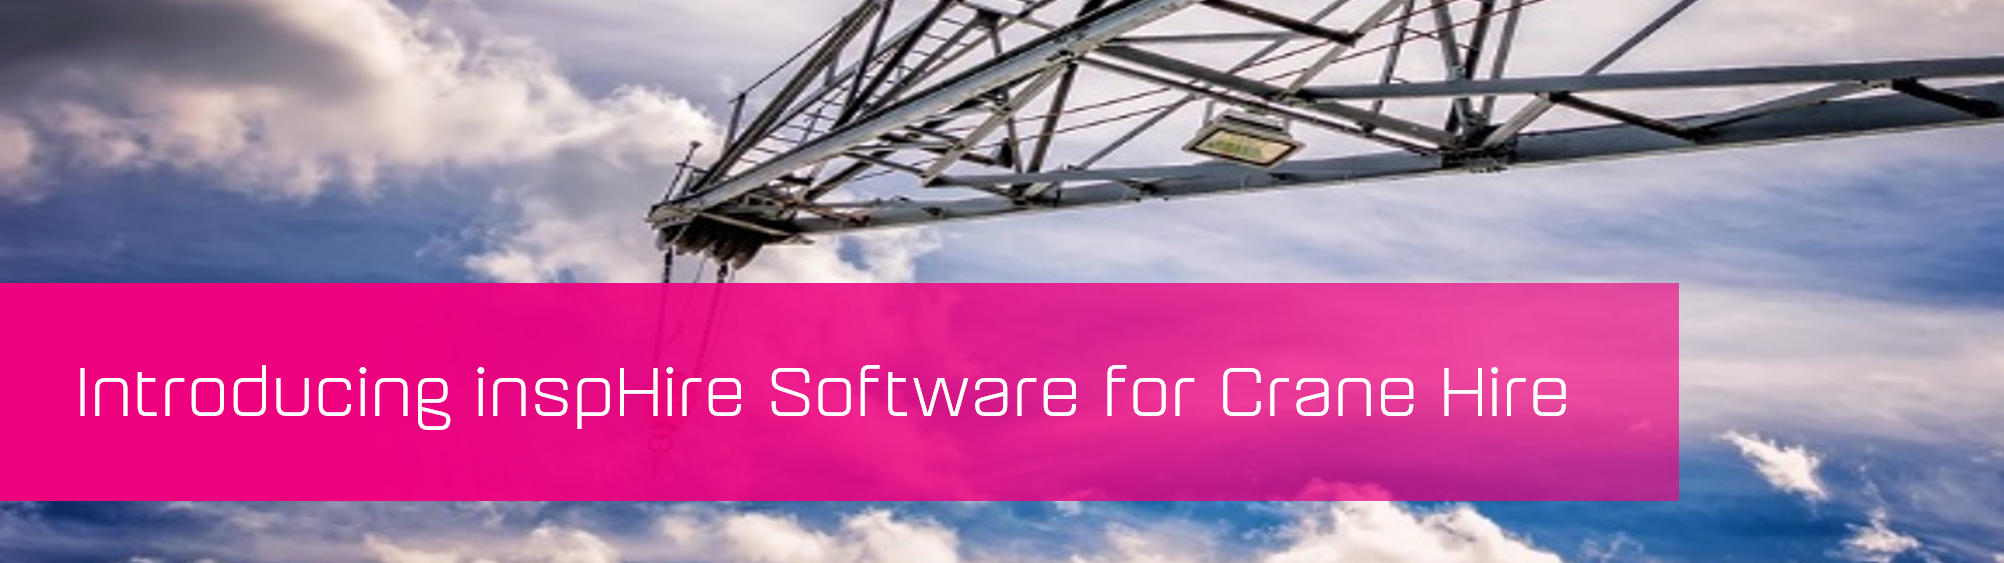 KCS SA - Blog - Insphire Software for Crane hire